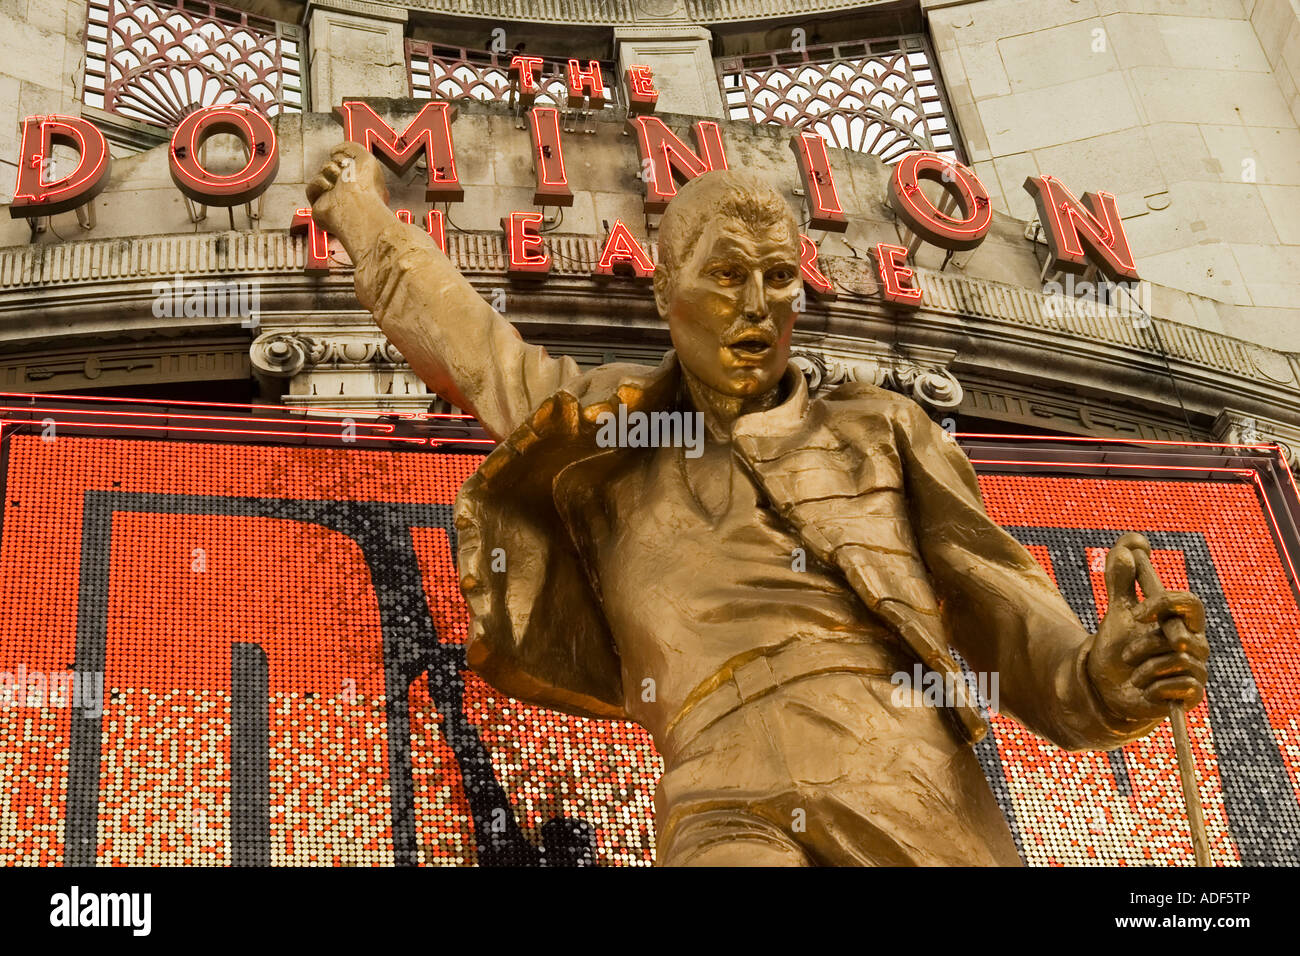 Freddie Mercury Statue At The Dominion Theatre London